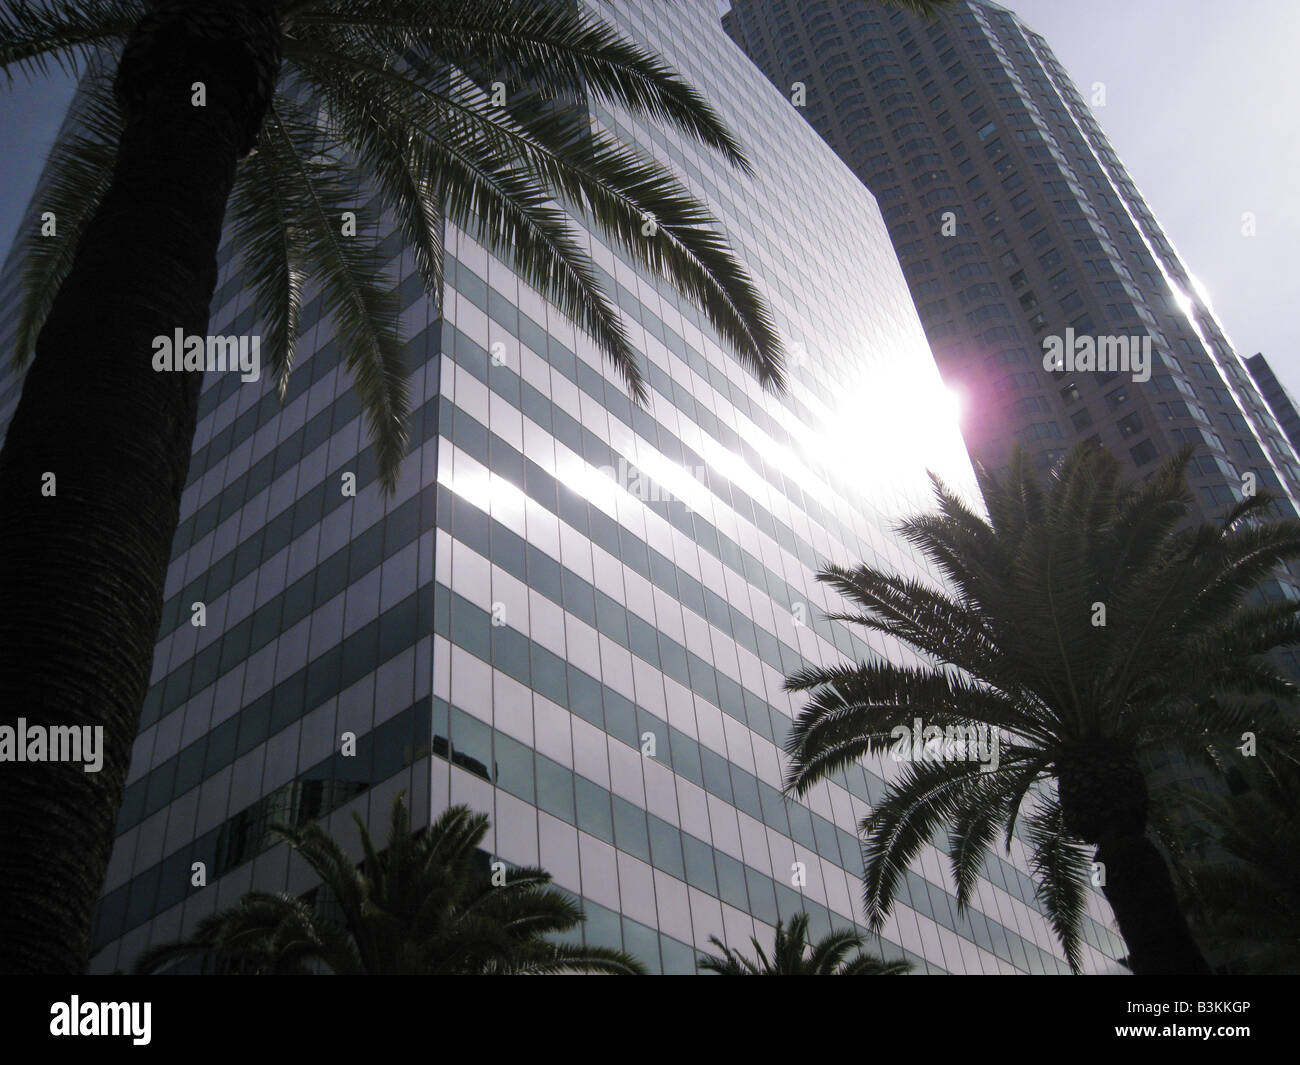 LOS ANGELES  skyscrapers in the financial area of the city - Stock Image